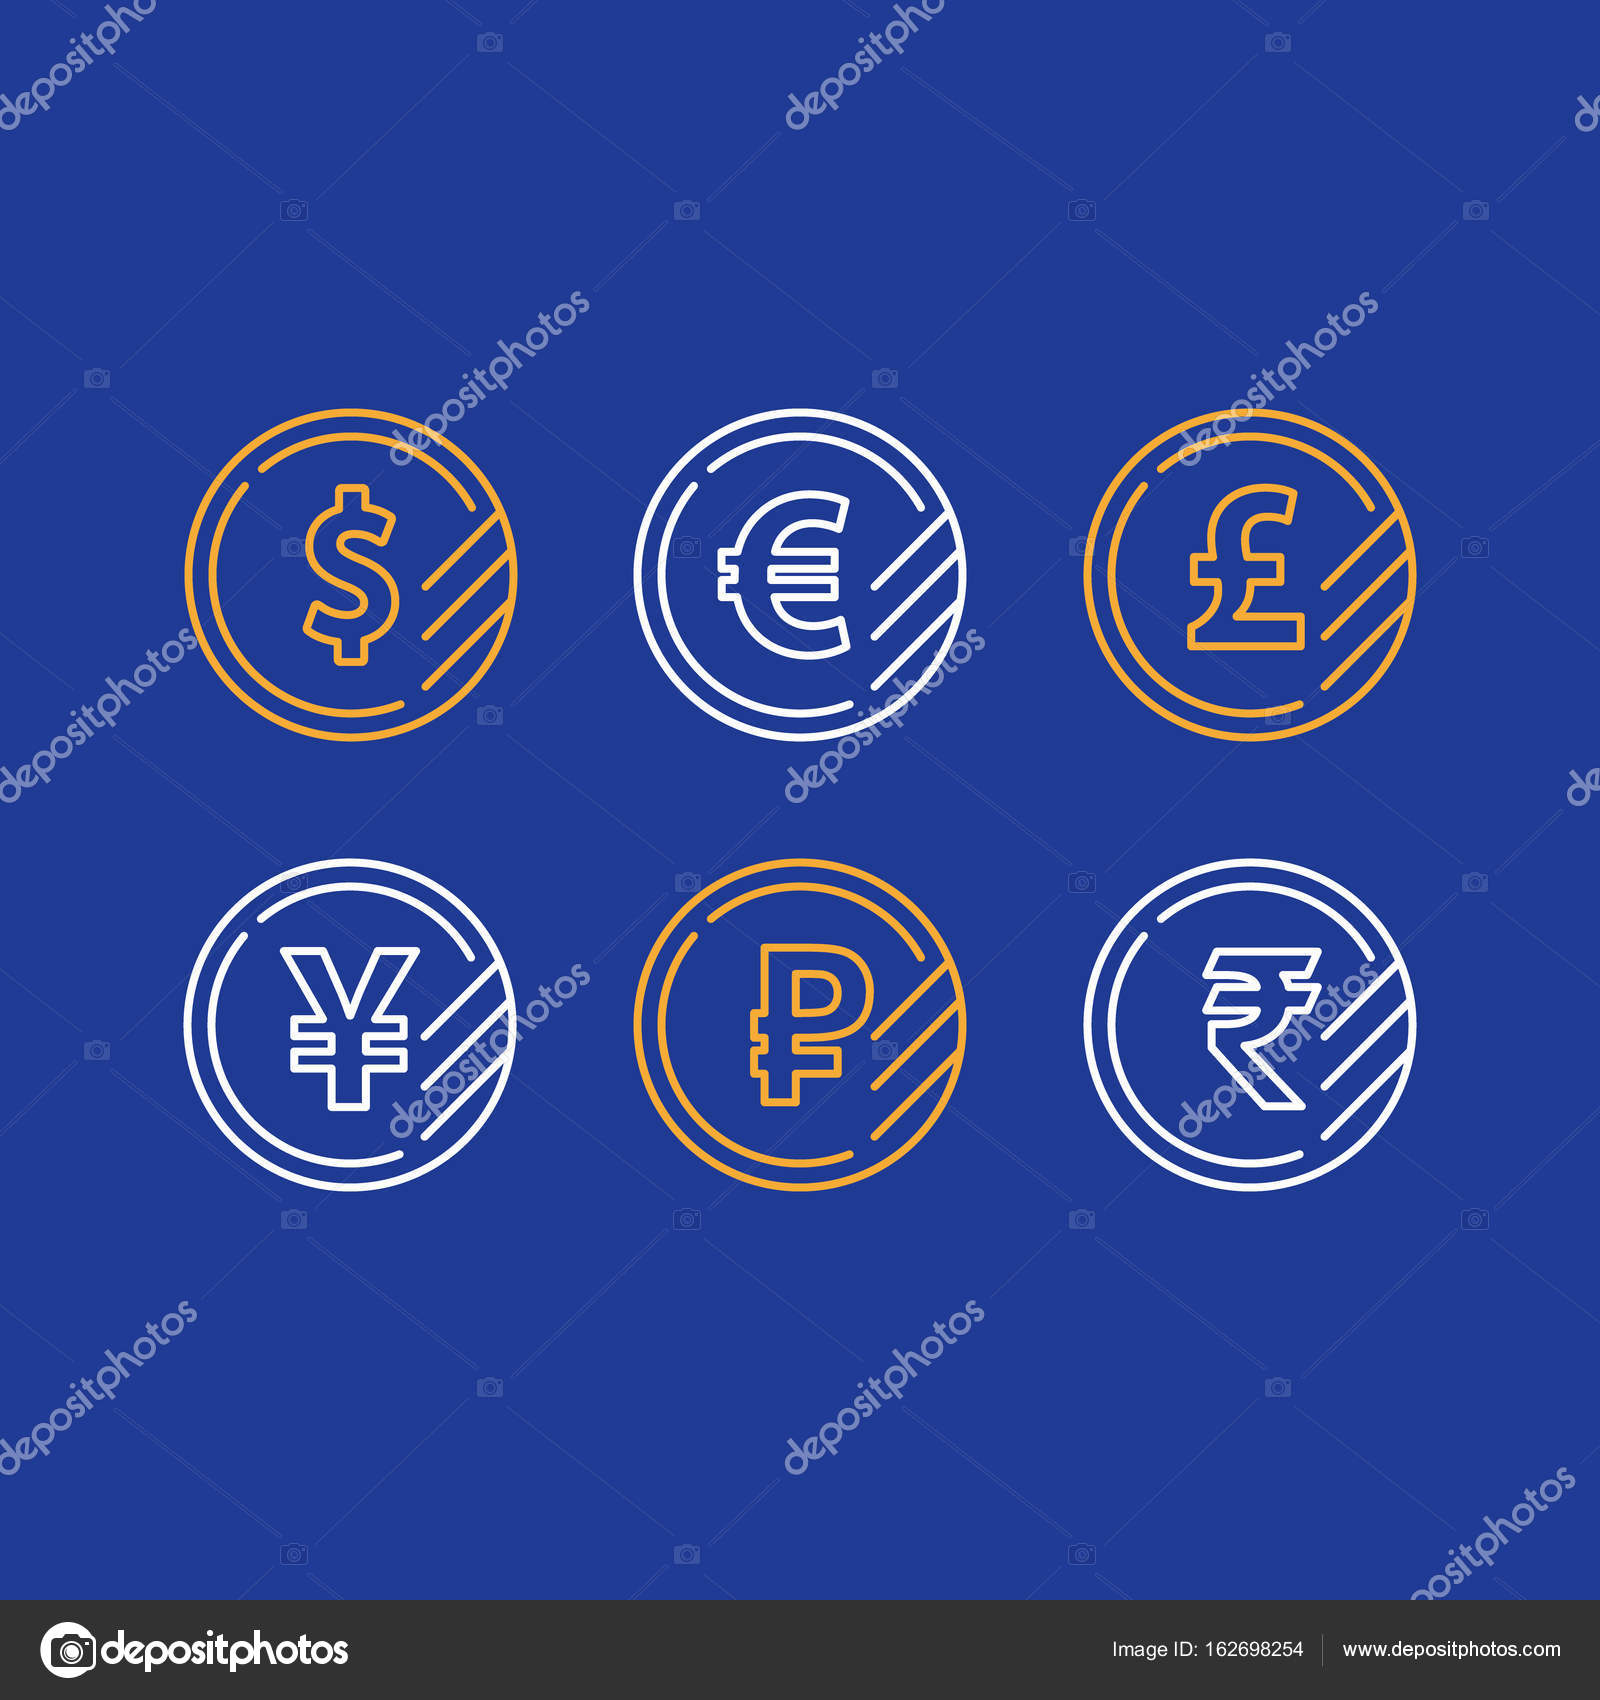 Dollar Coin Euro Sign Pound Line Icon Yen Currency Ruble Symbol